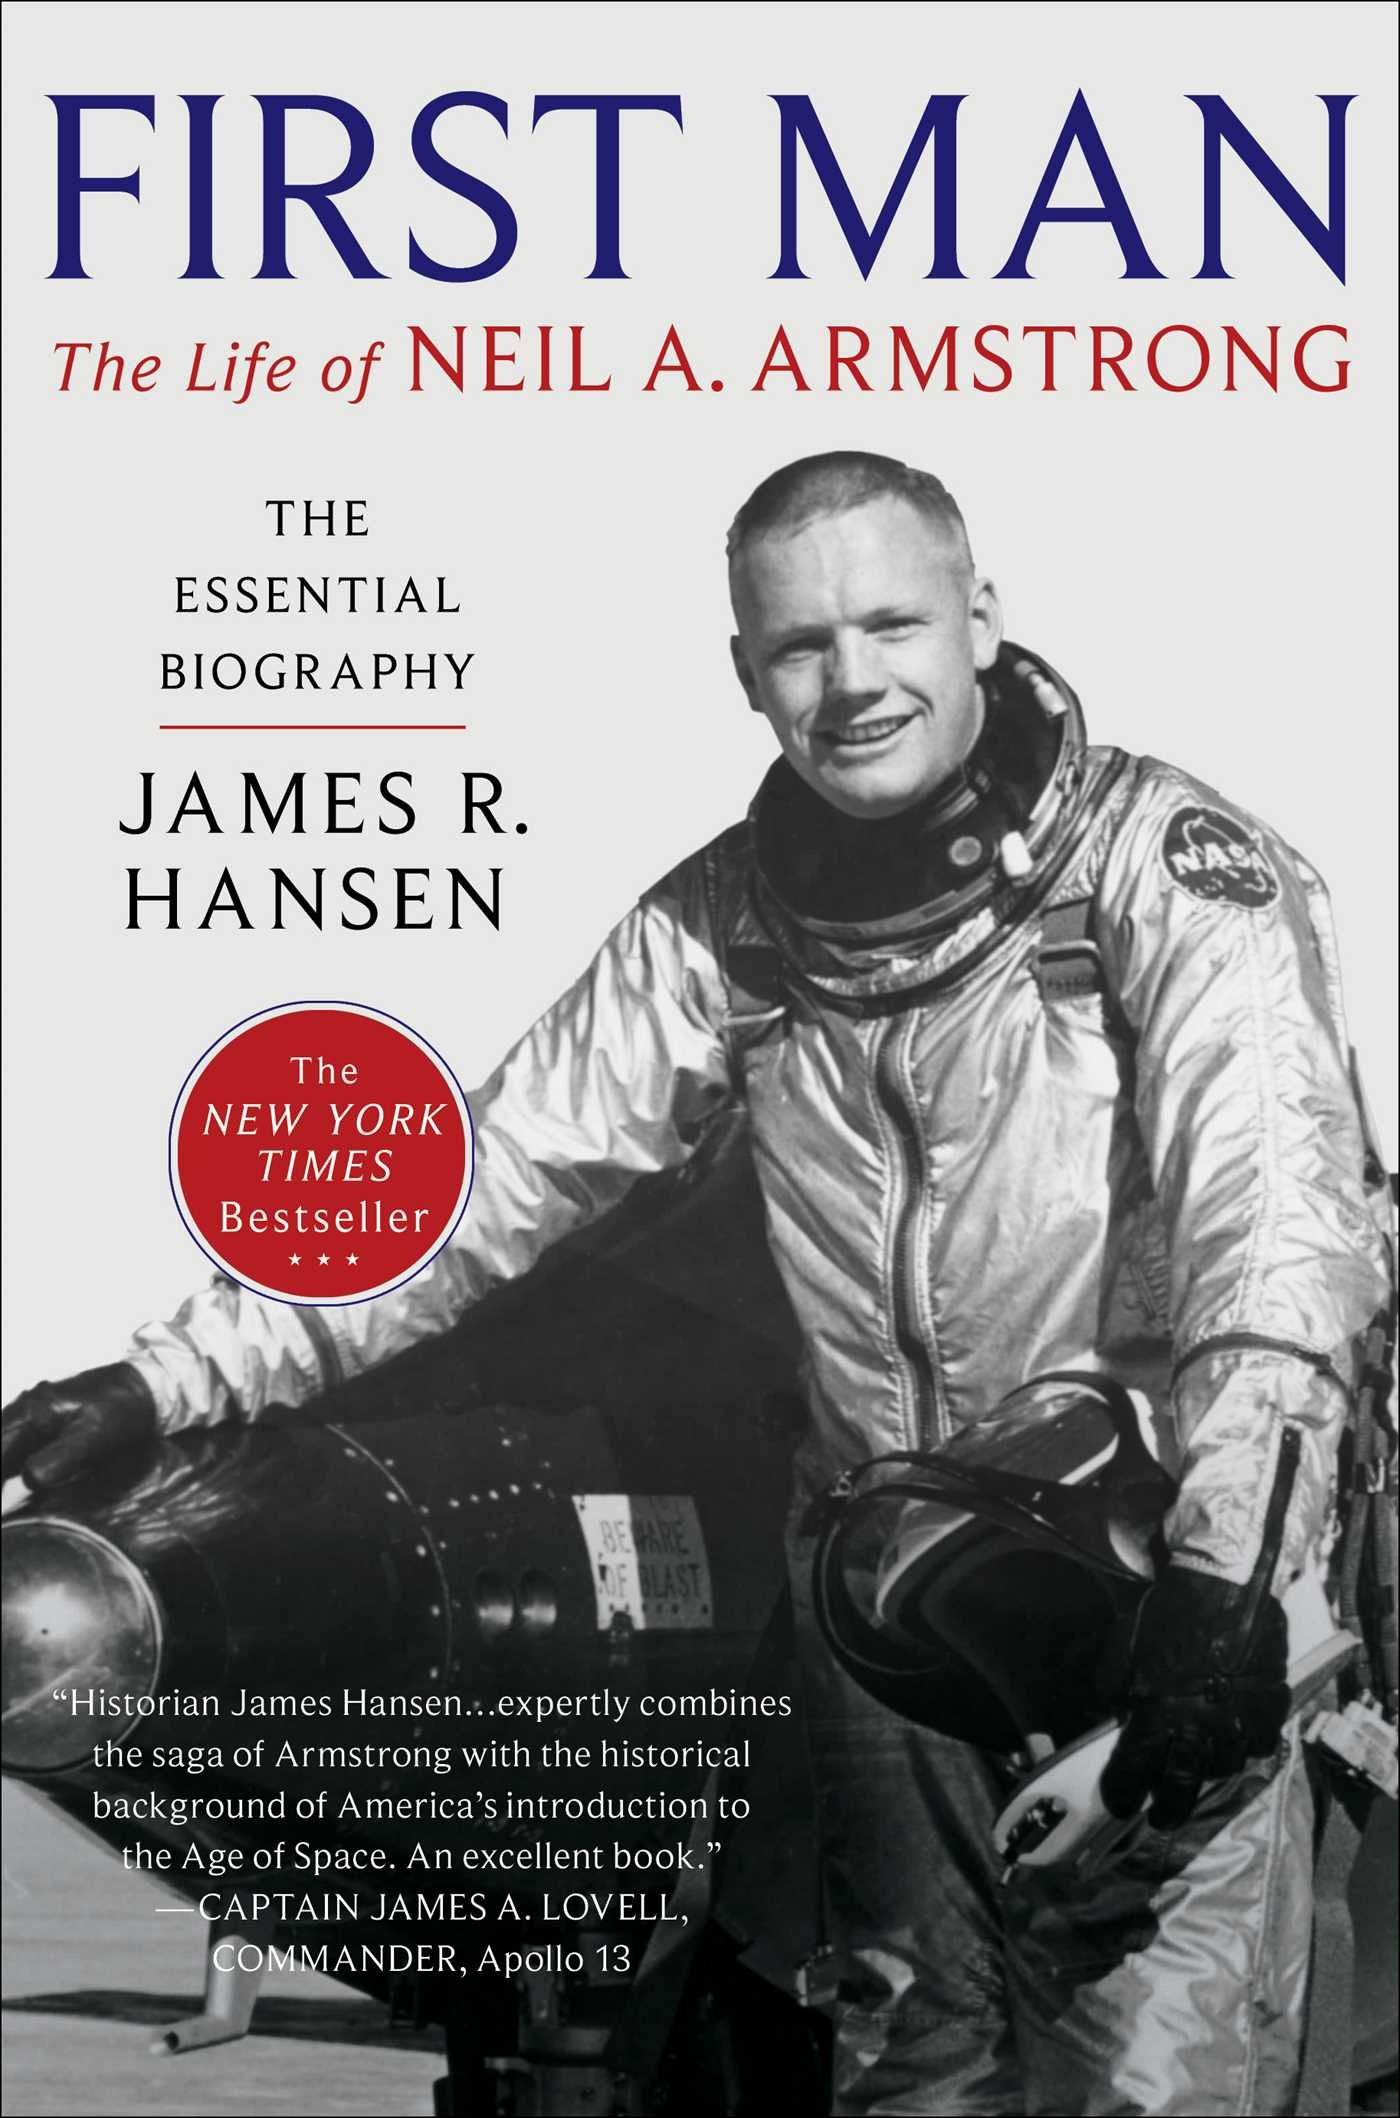 first man the life of neil a. armstrong by james r. hansen.jpg